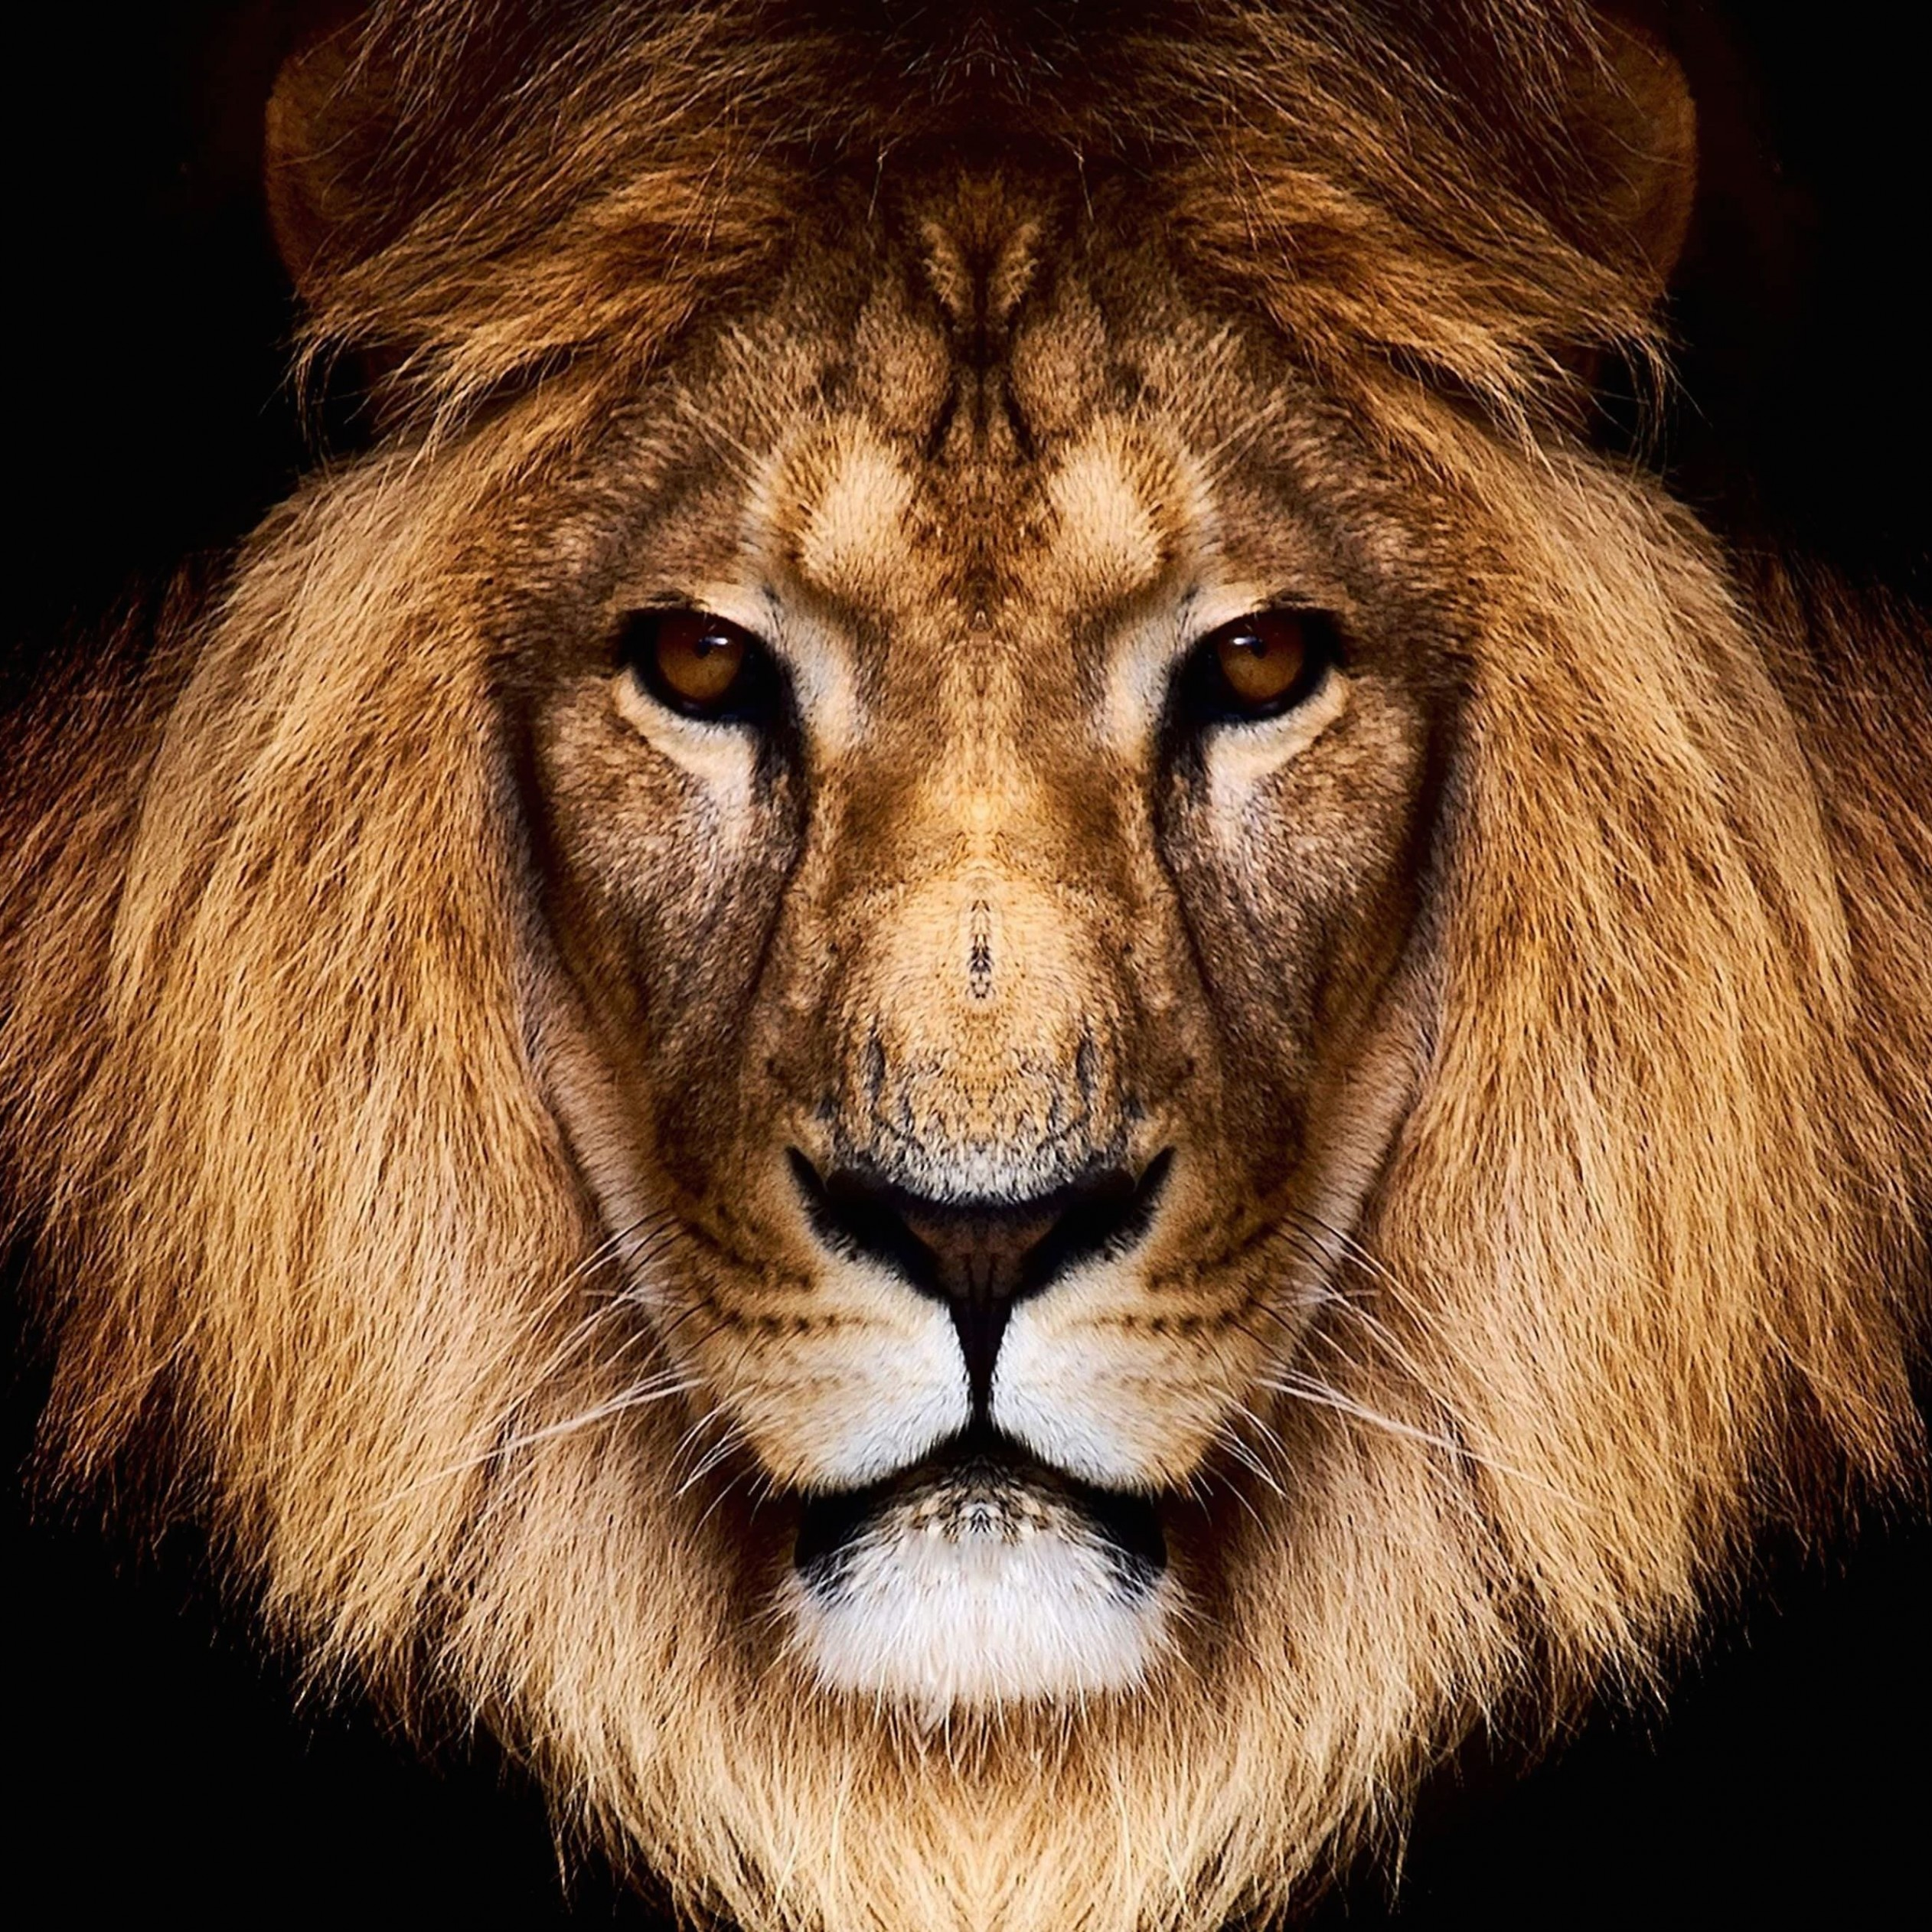 King Lion Wallpaper for Apple iPad Air